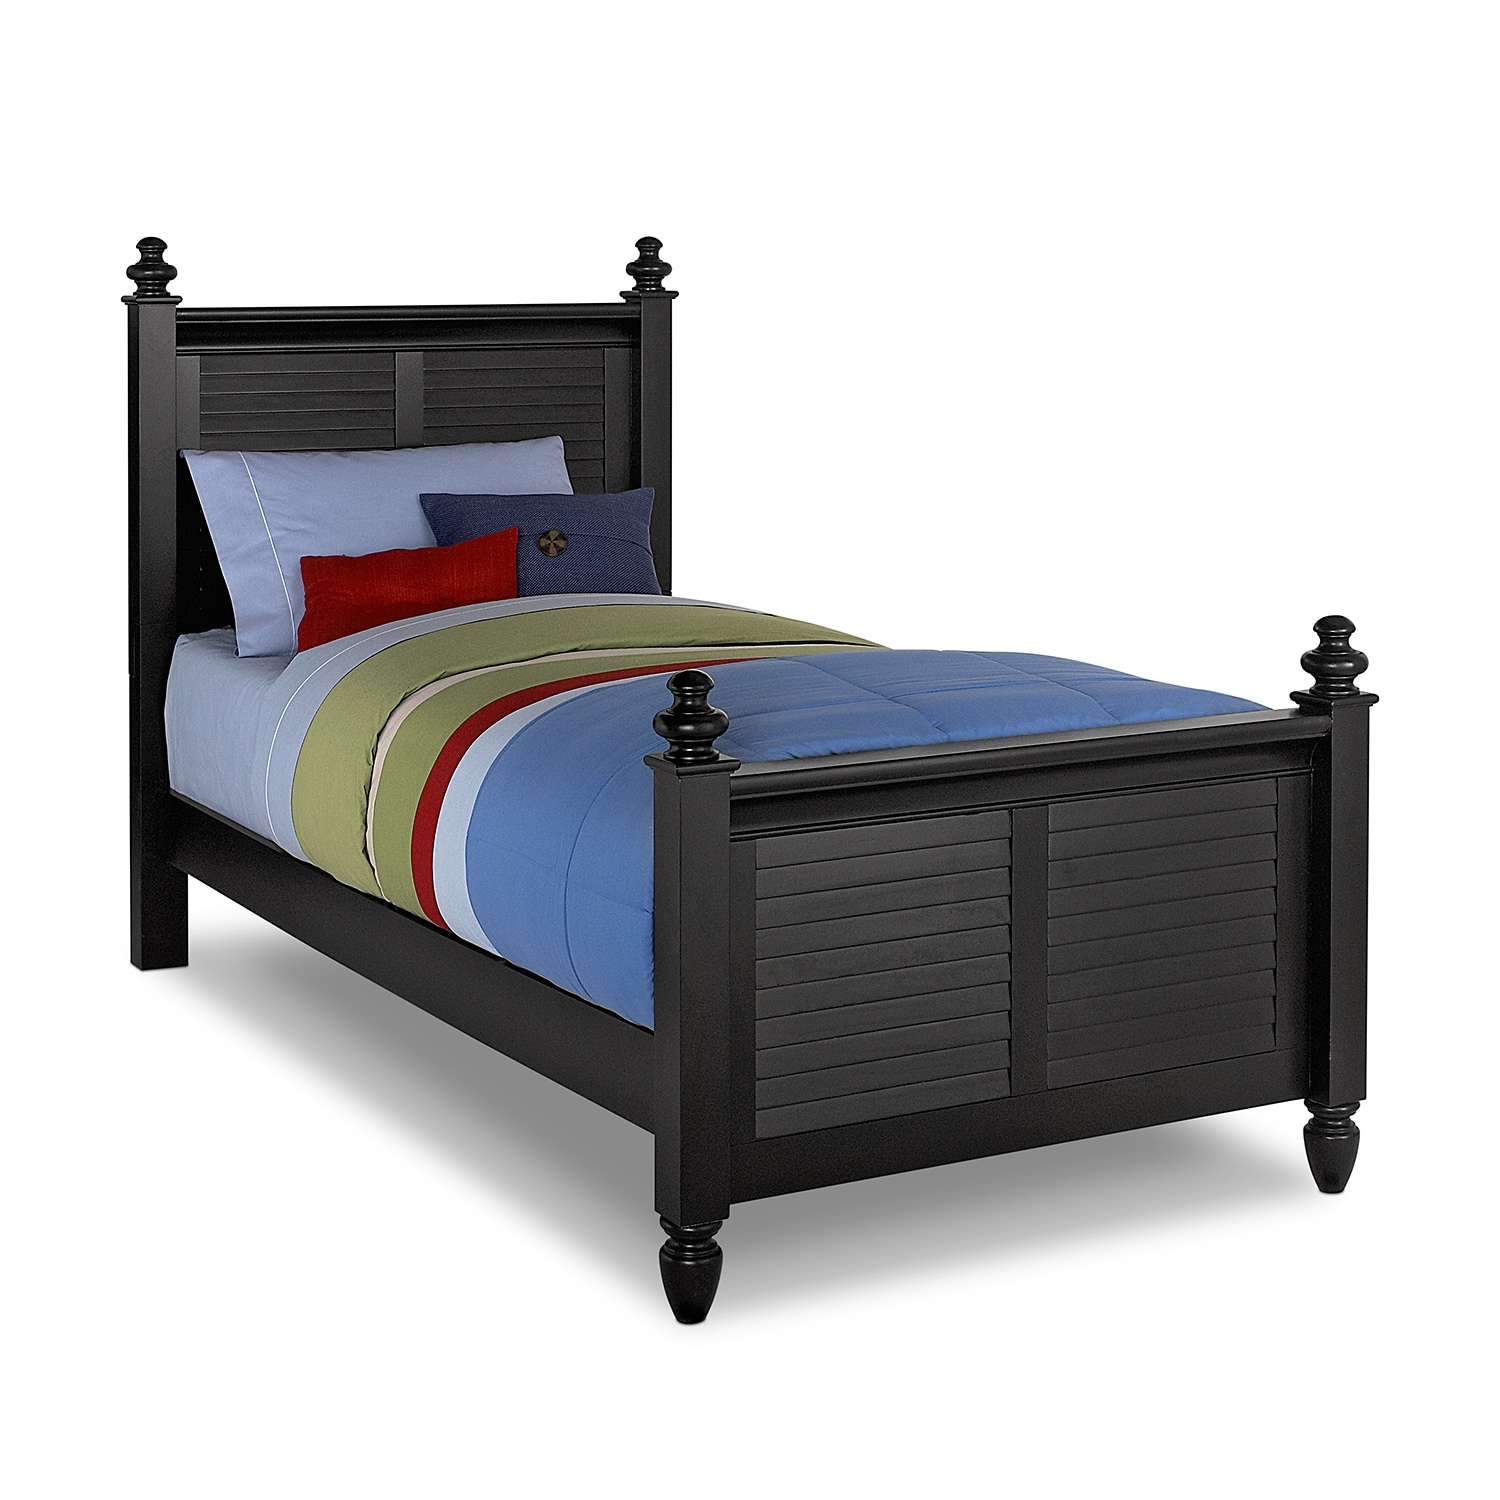 Seaside twin bed black american signature furniture Black bunk beds